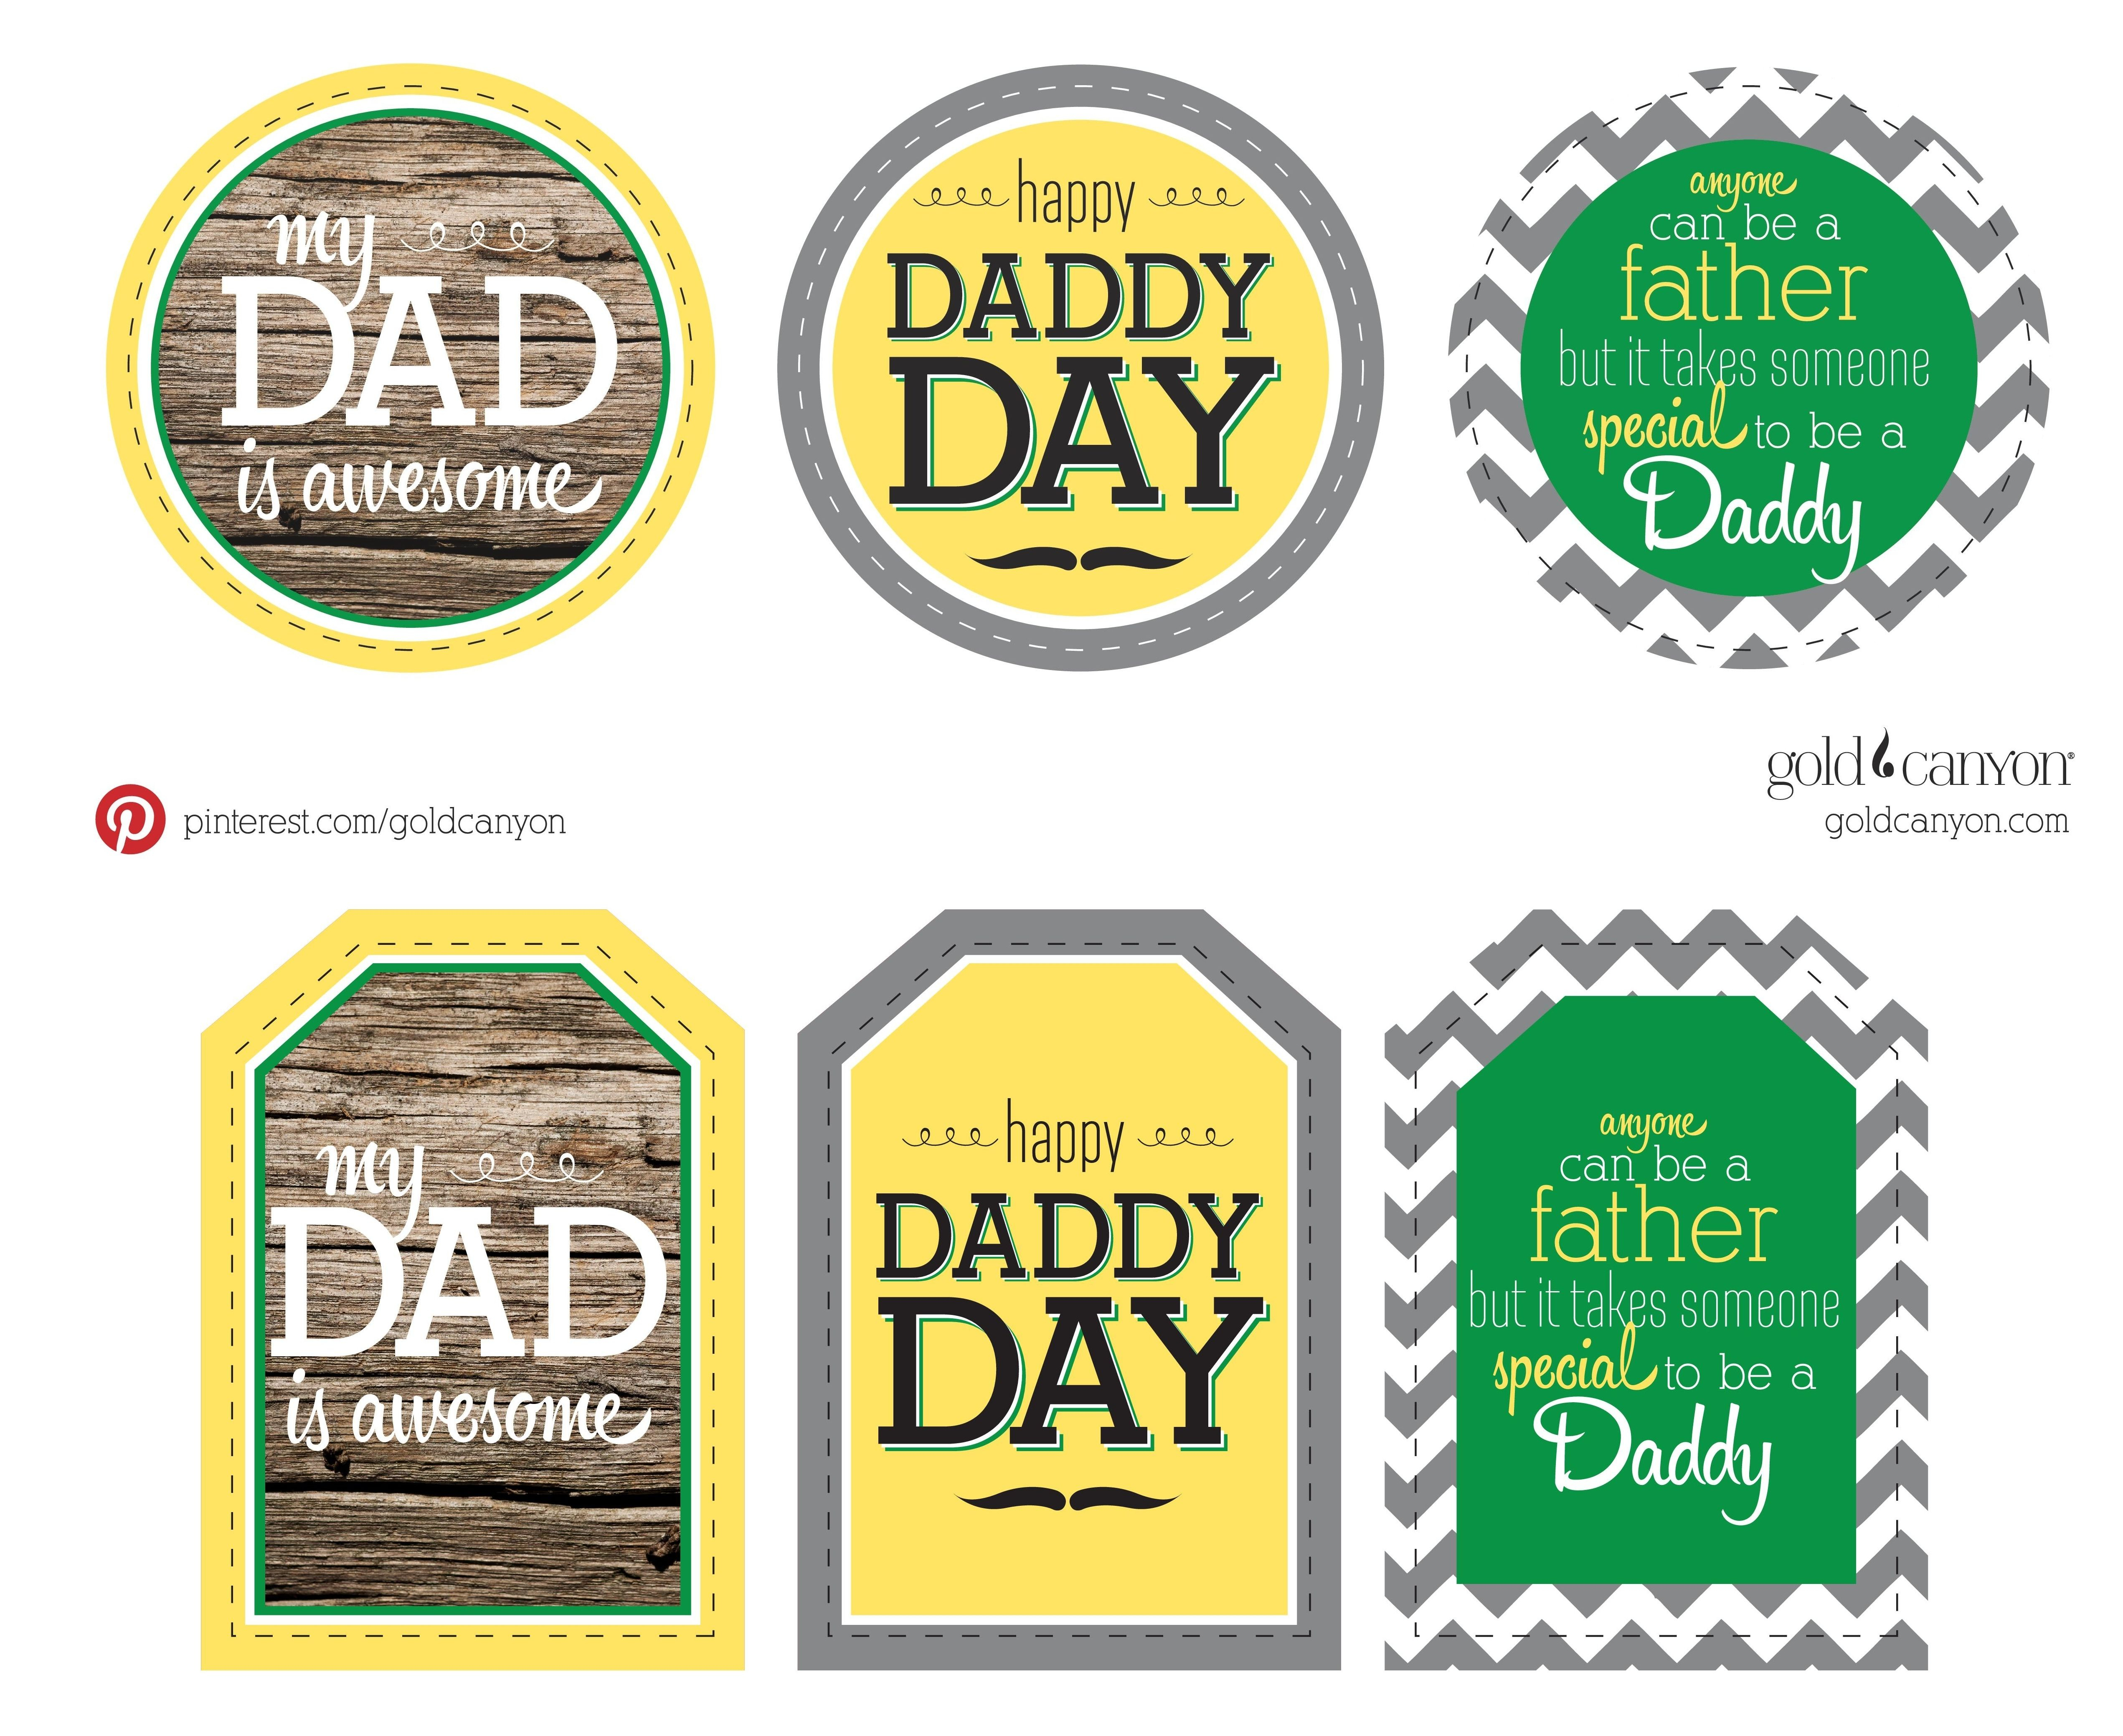 Free Printable Gift Tags For Dad's Day! Show Your Daddy, Brother - Free Printable Father's Day Labels